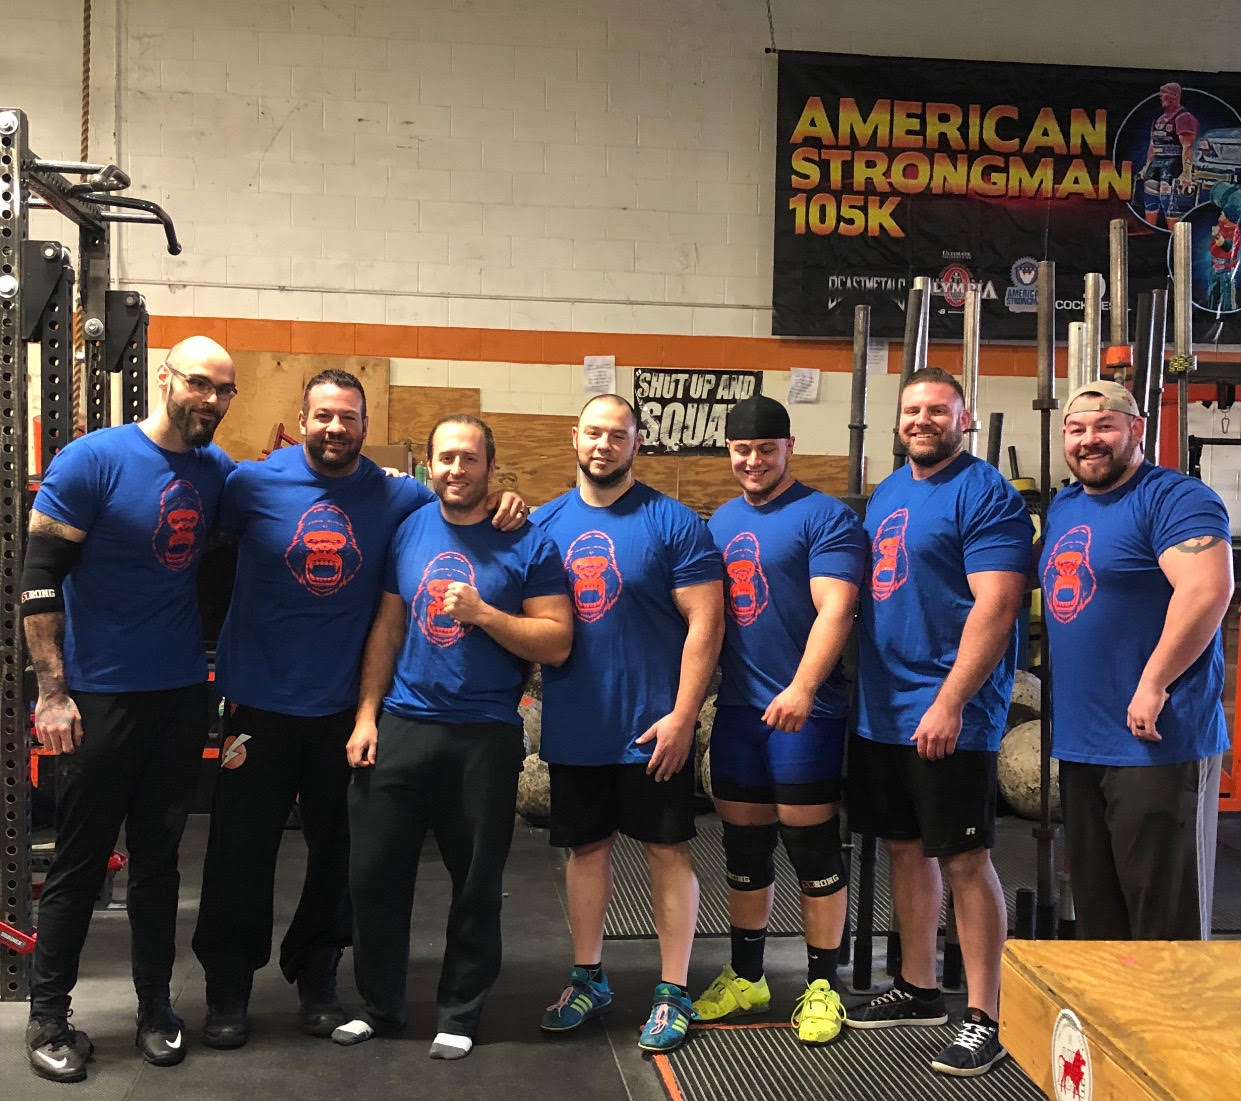 TEAM SIBYA + LIGHTENING FITNESS SHIRTS ARE AVAILABLE FOR PURCHASE AT LIGHTENING FITNESS GYM